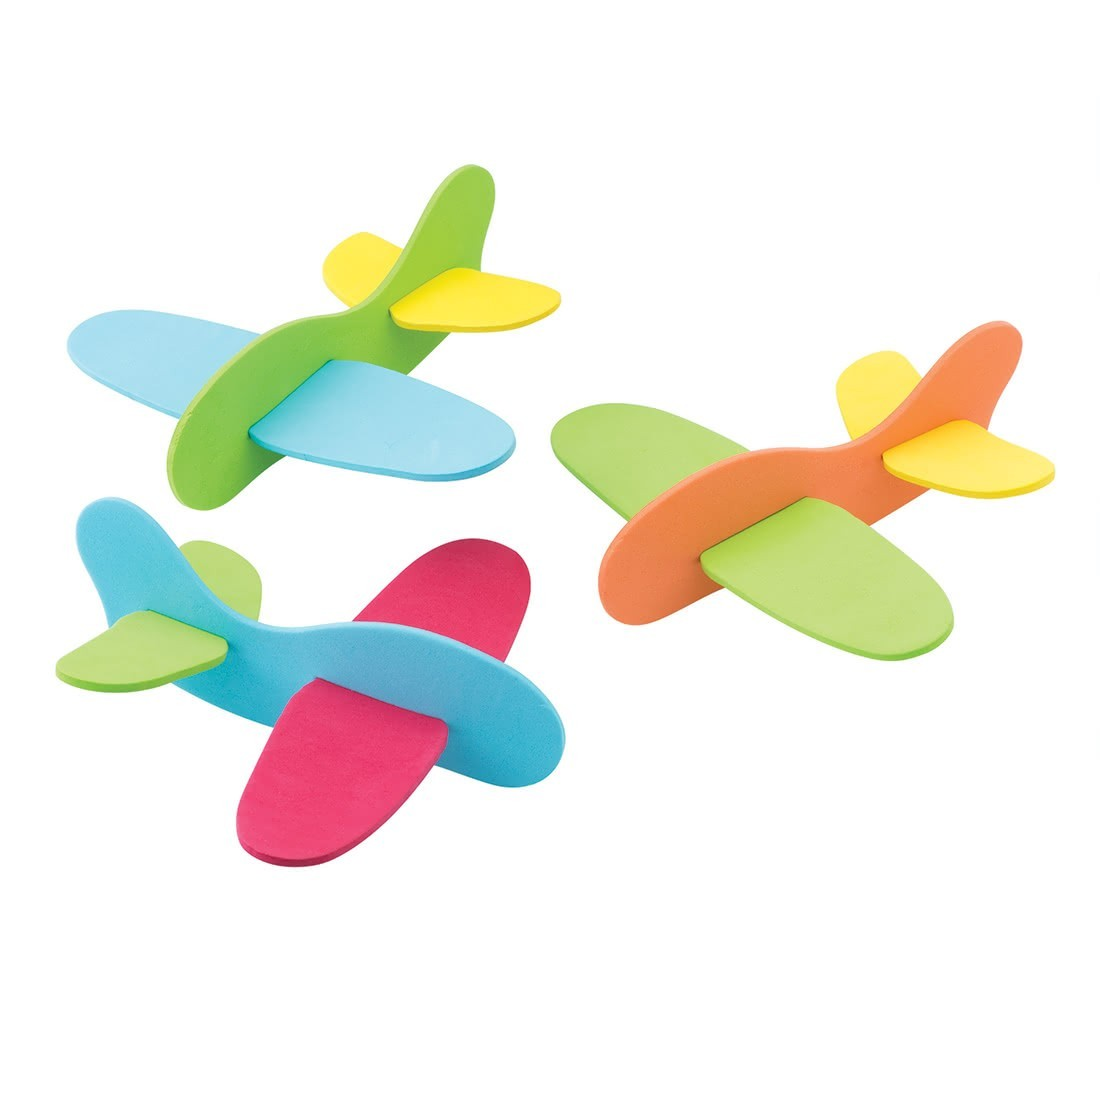 Bright Foam Gliders [image]